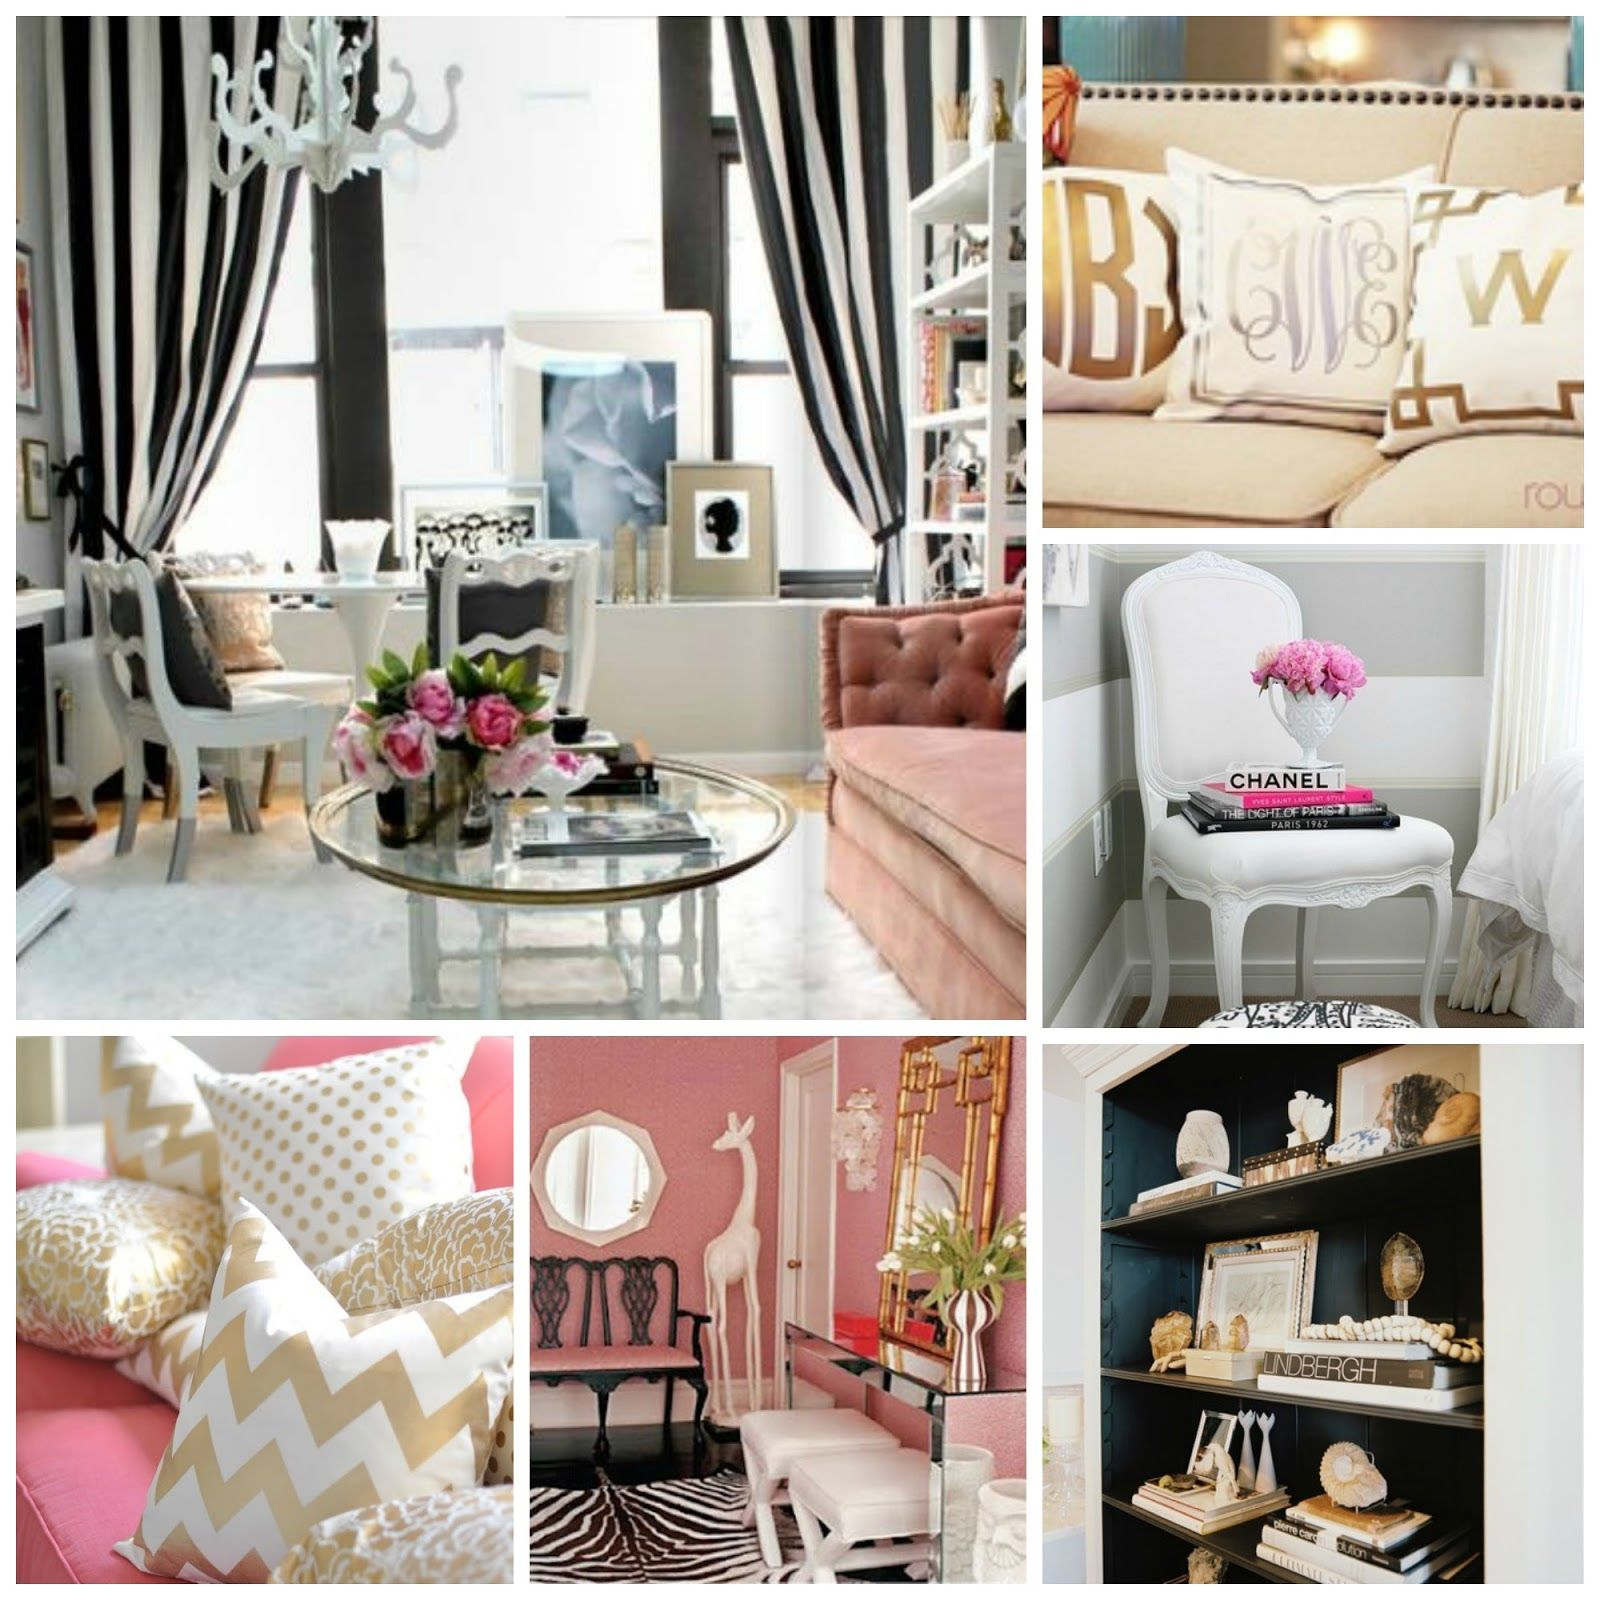 Bedroom Ideas Black And Gold nice white and gold bedroom ideas - pink black white and gold room